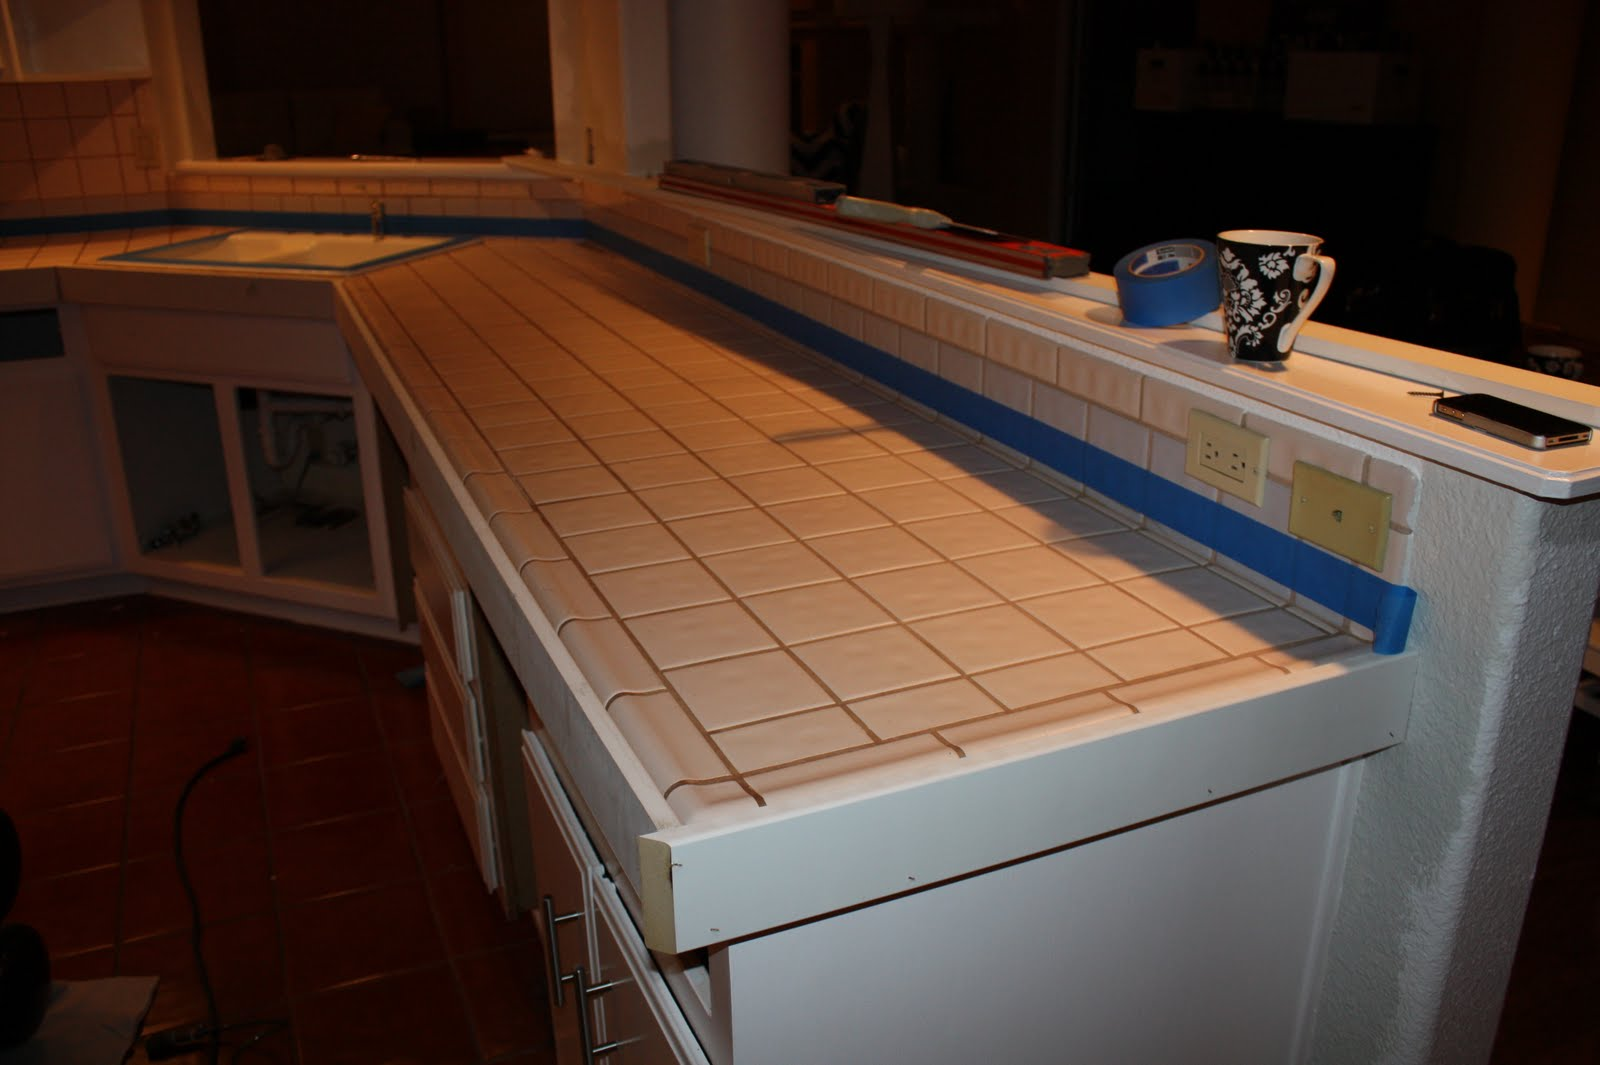 Attractive Quick Install Of Concrete Countertops! Kitchen Remodel!